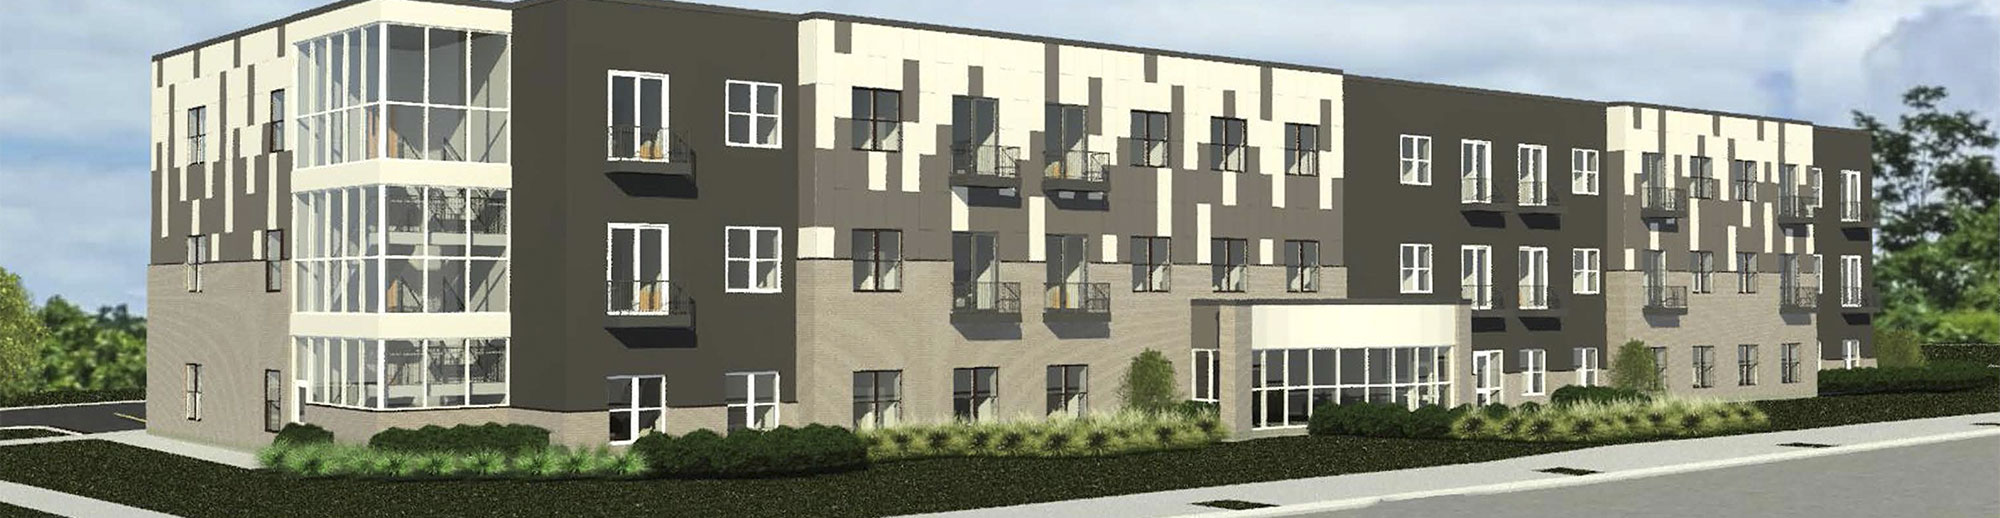 Architect's rendering of Antoine Court Apartments